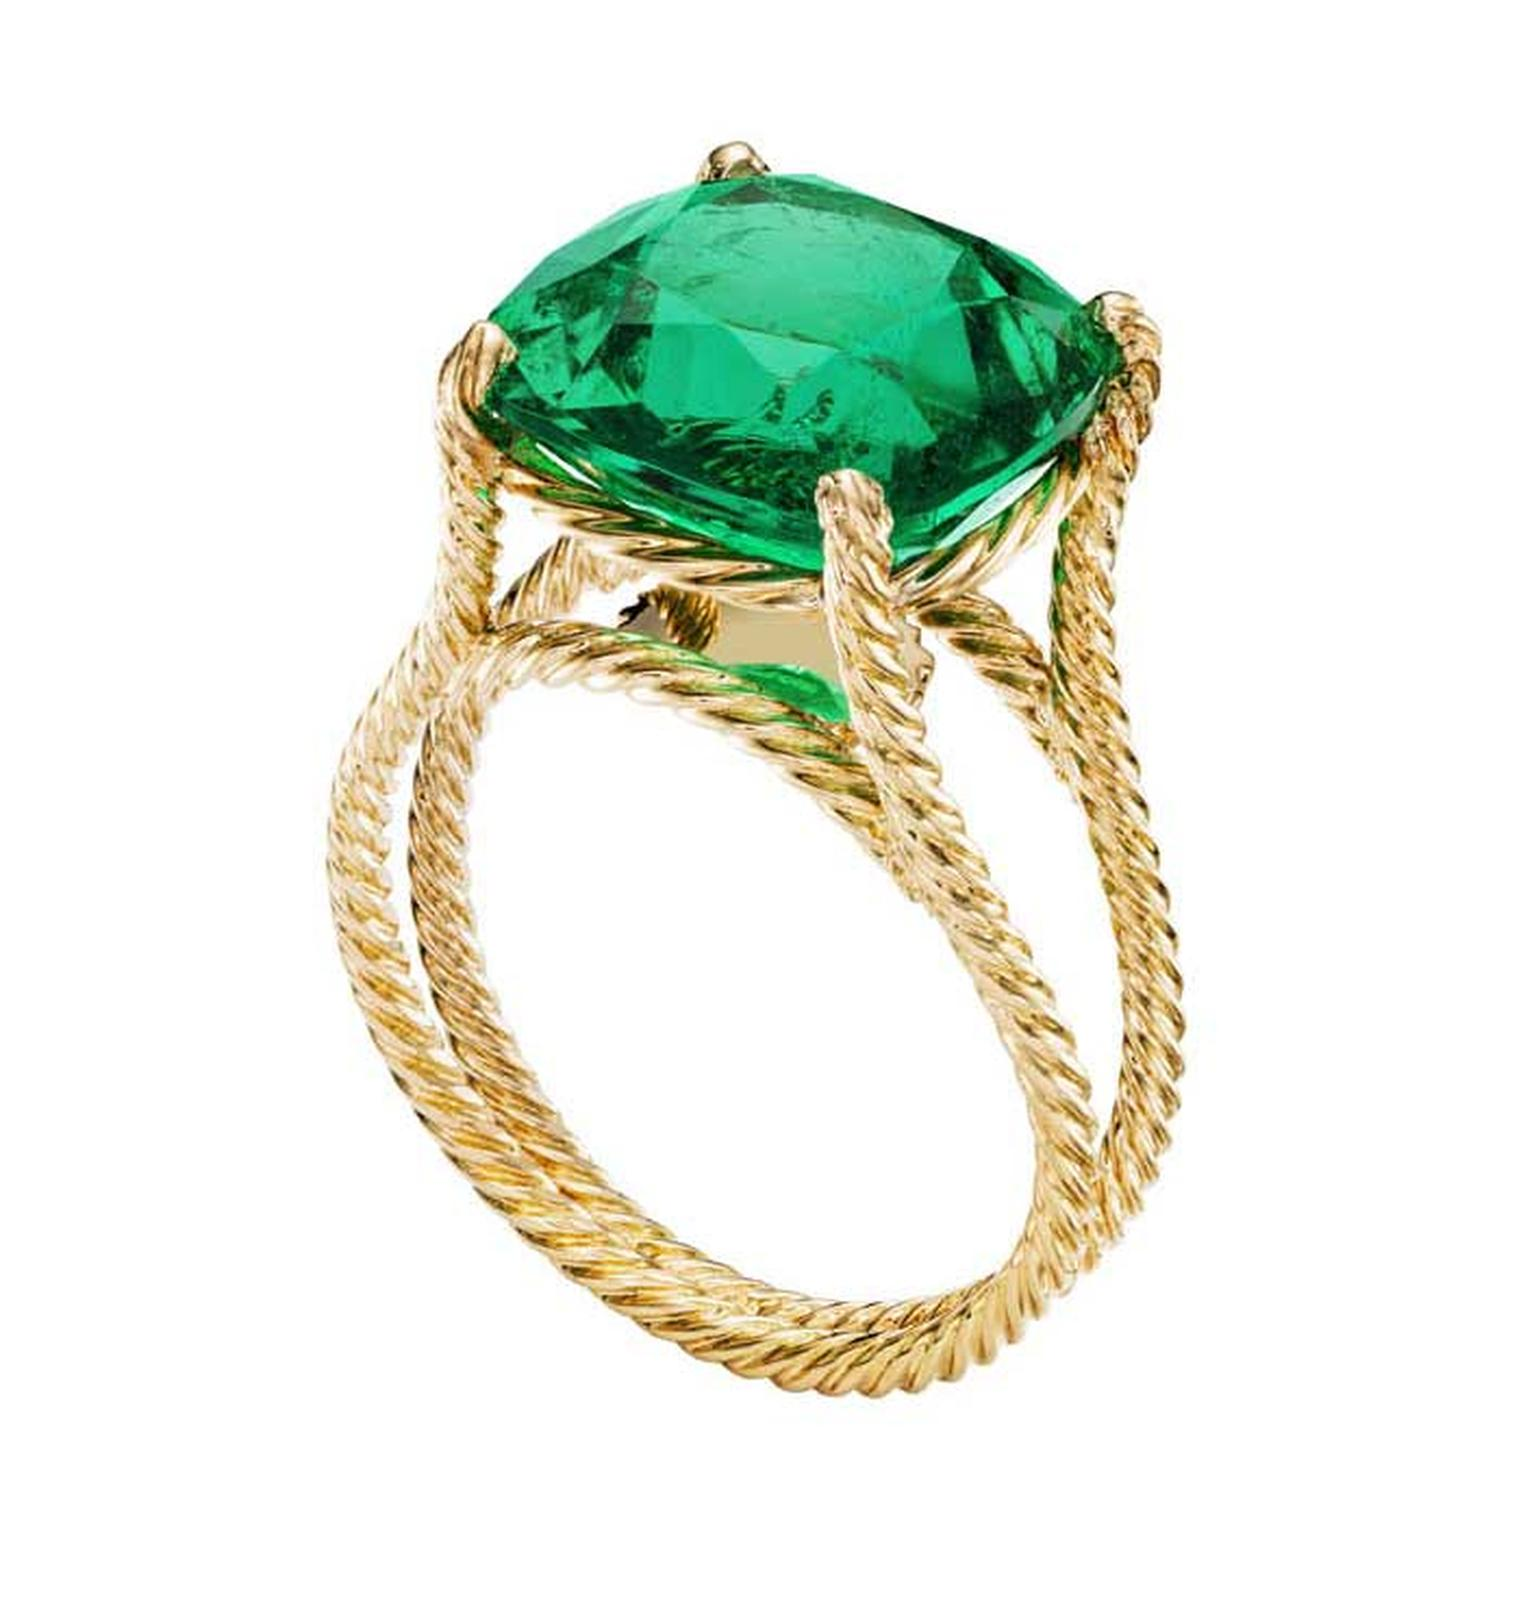 Extremely Piaget emerald ring in yellow gold.